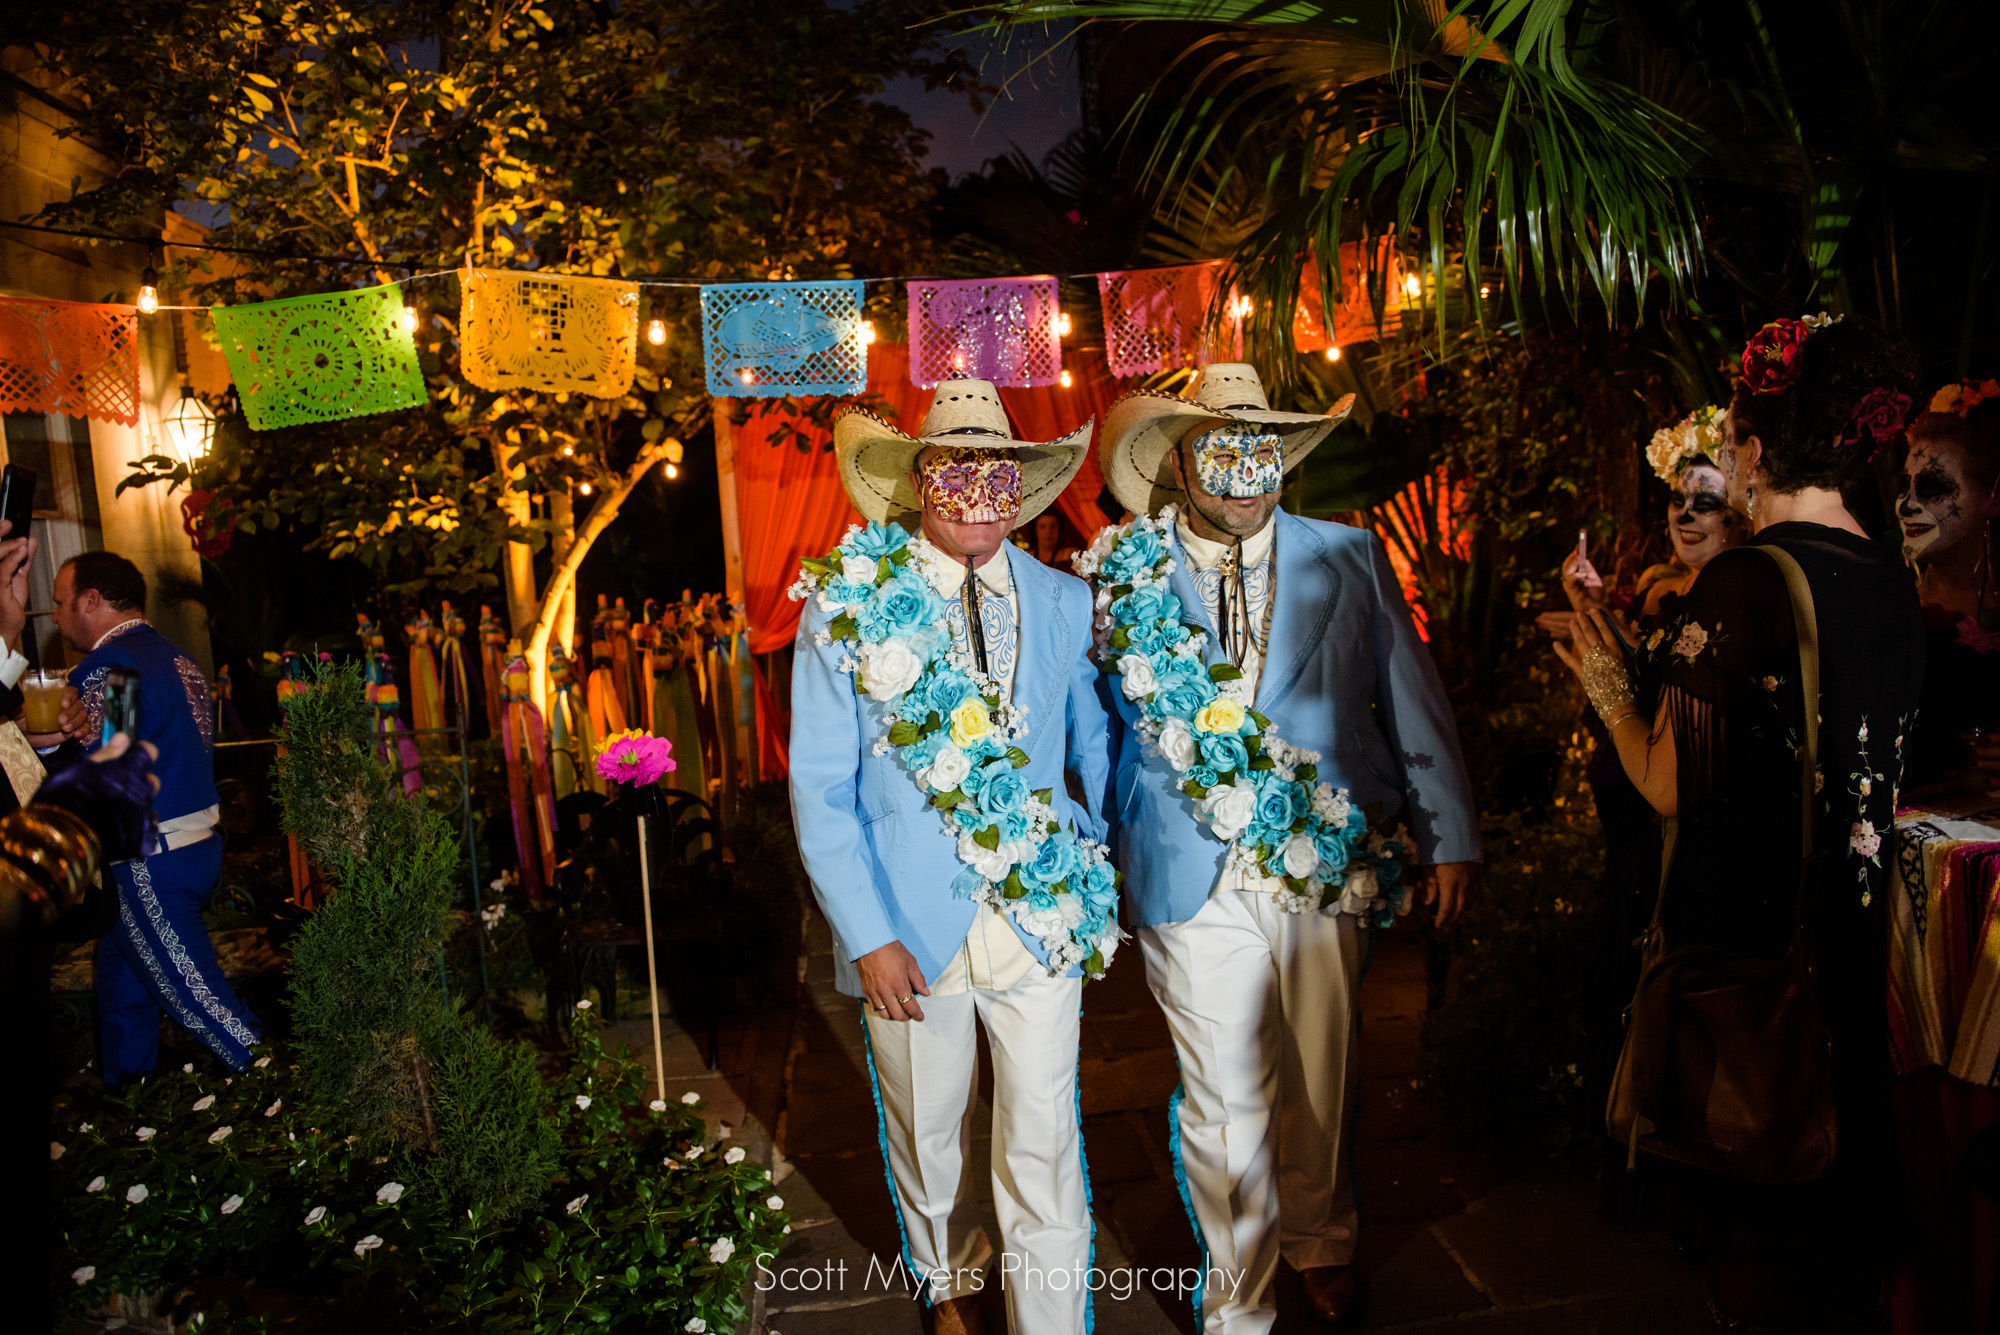 Groom and Groom entering the wedding, Cafe Amelie, New Orleans